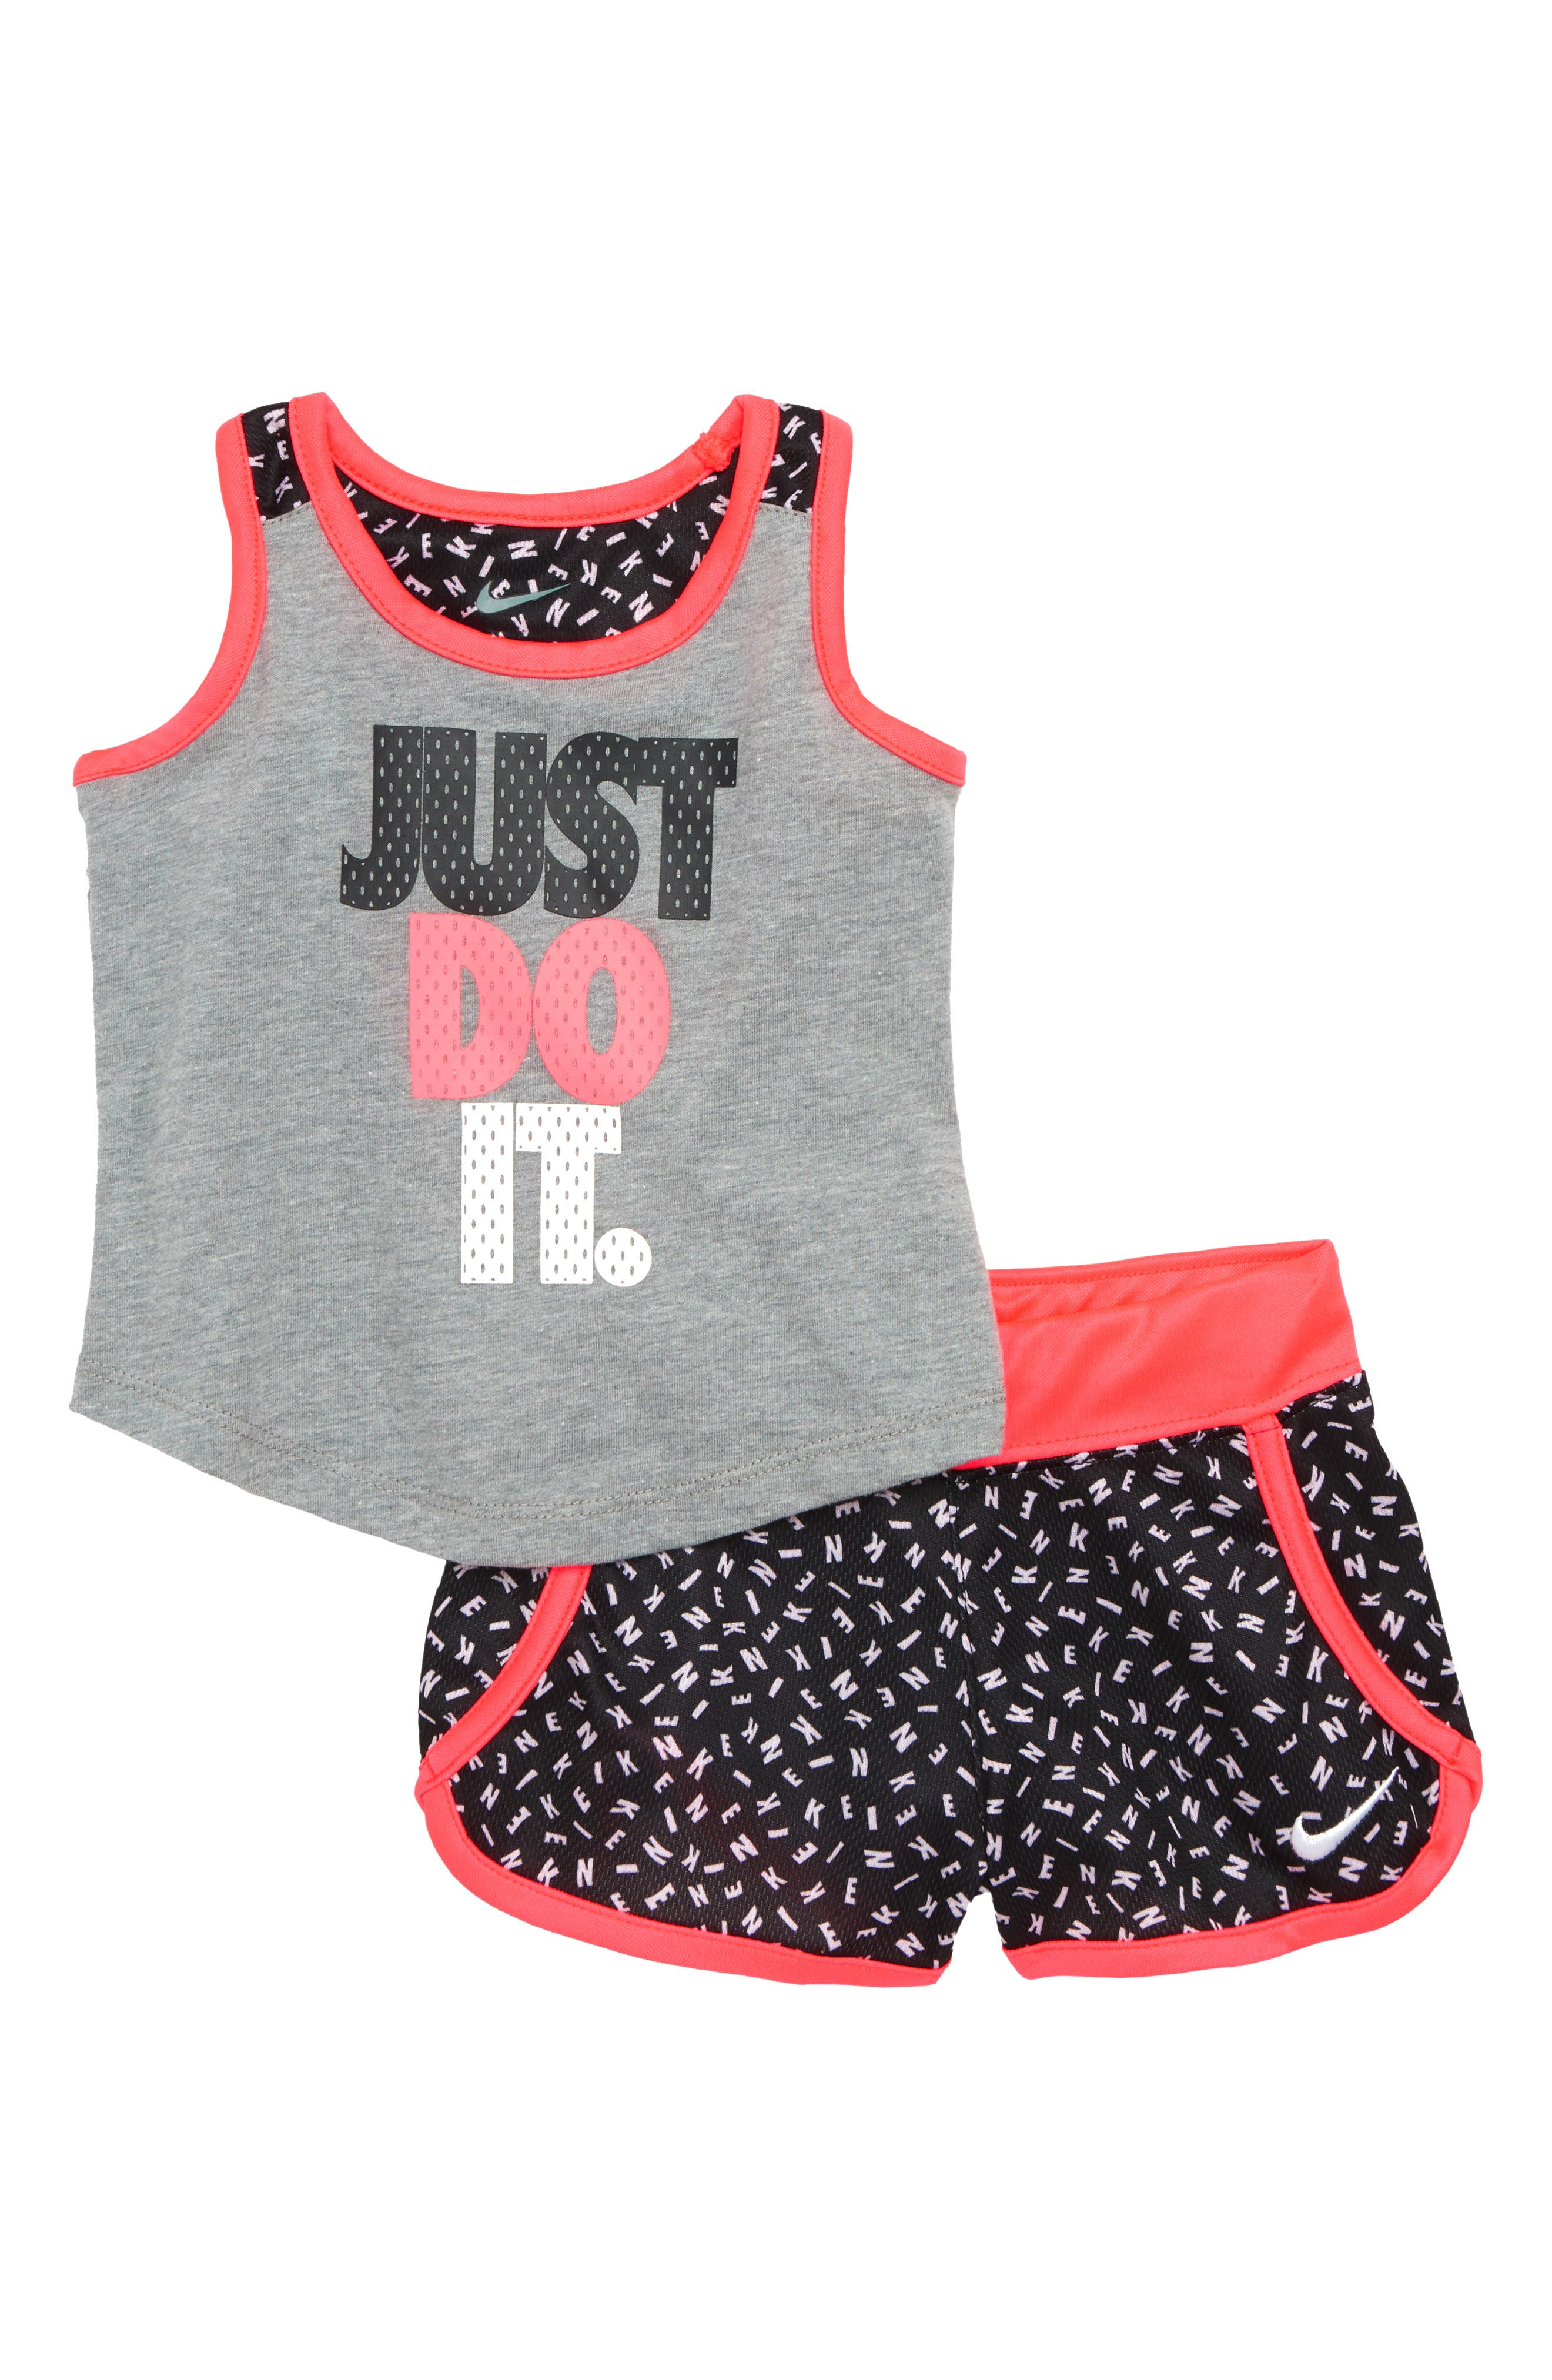 Just Dot It Tank & Shorts Set,                         Main,                         color,